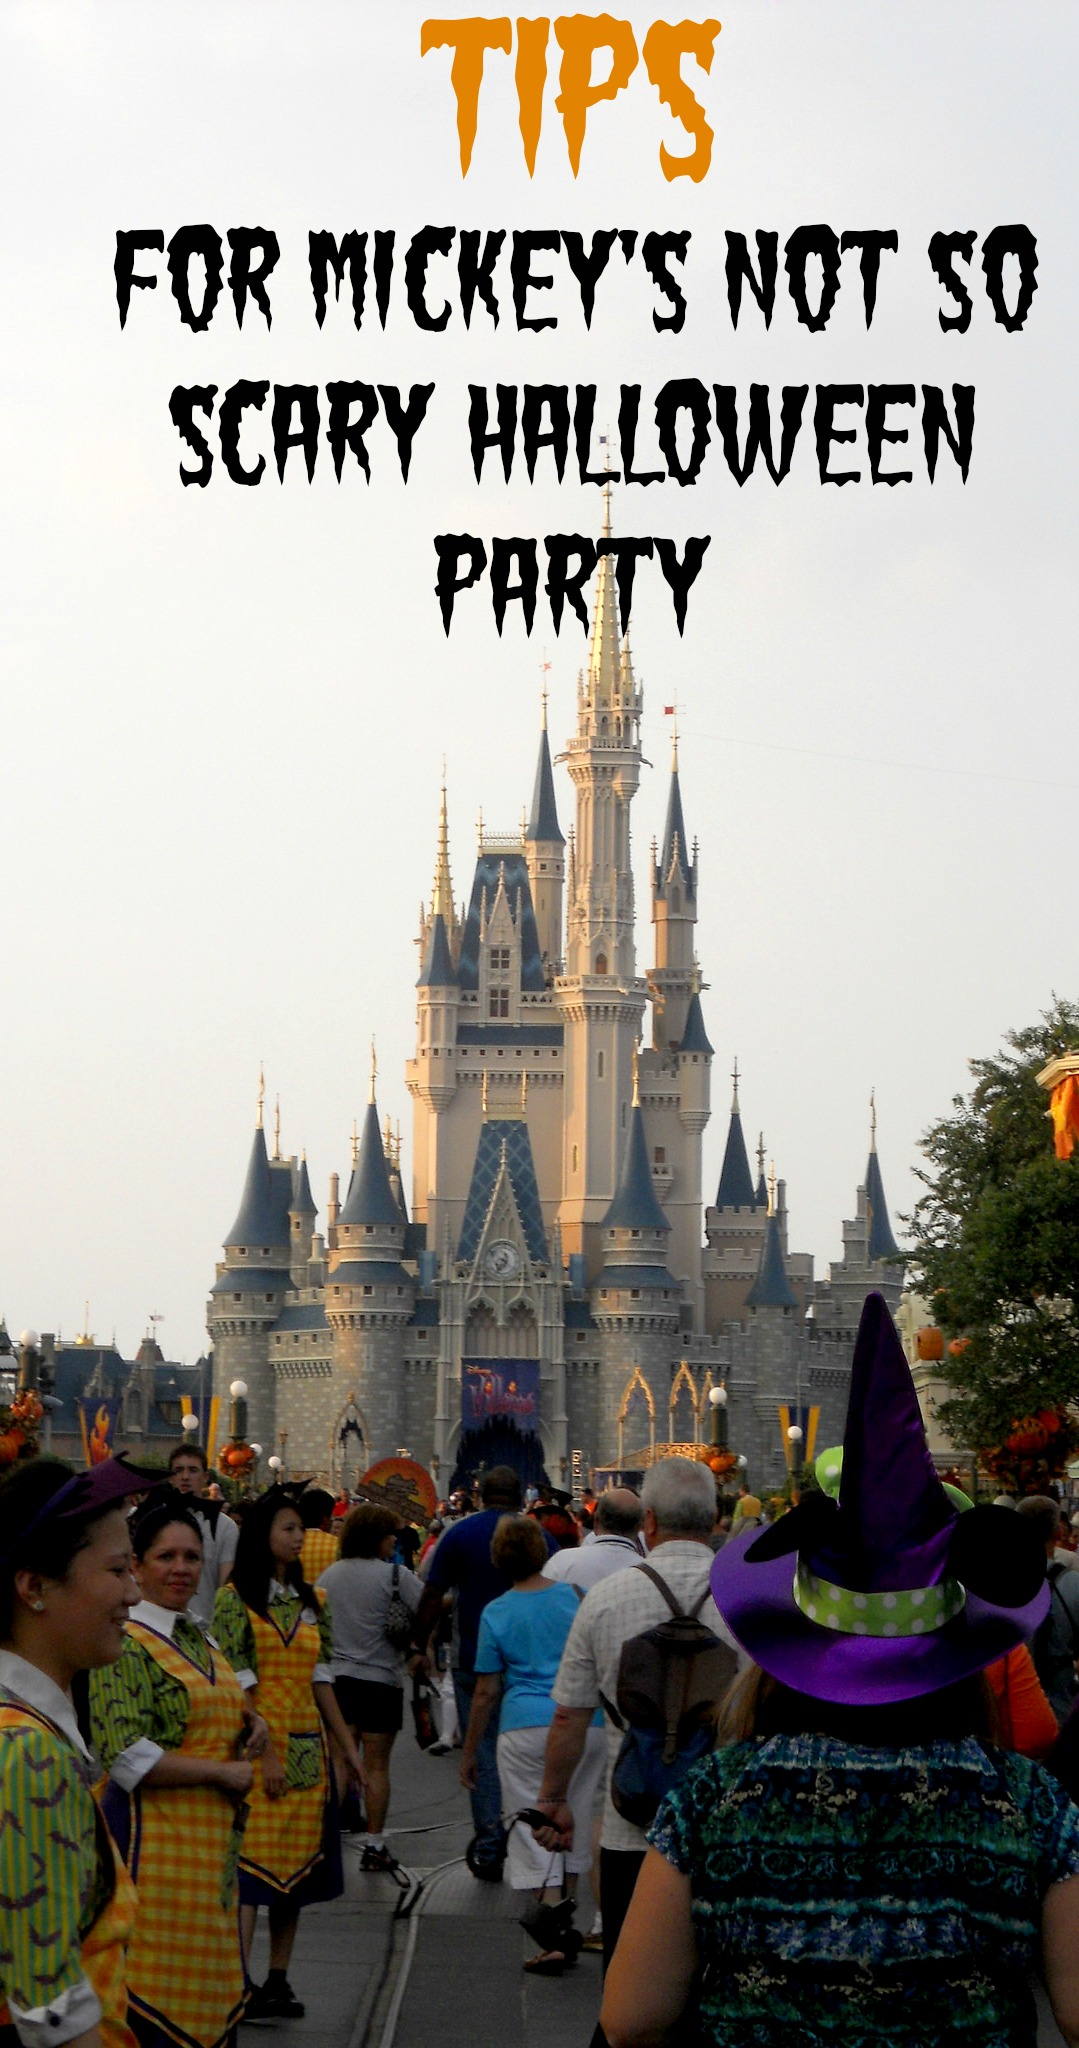 Not So Scary Halloween Party at Disney World